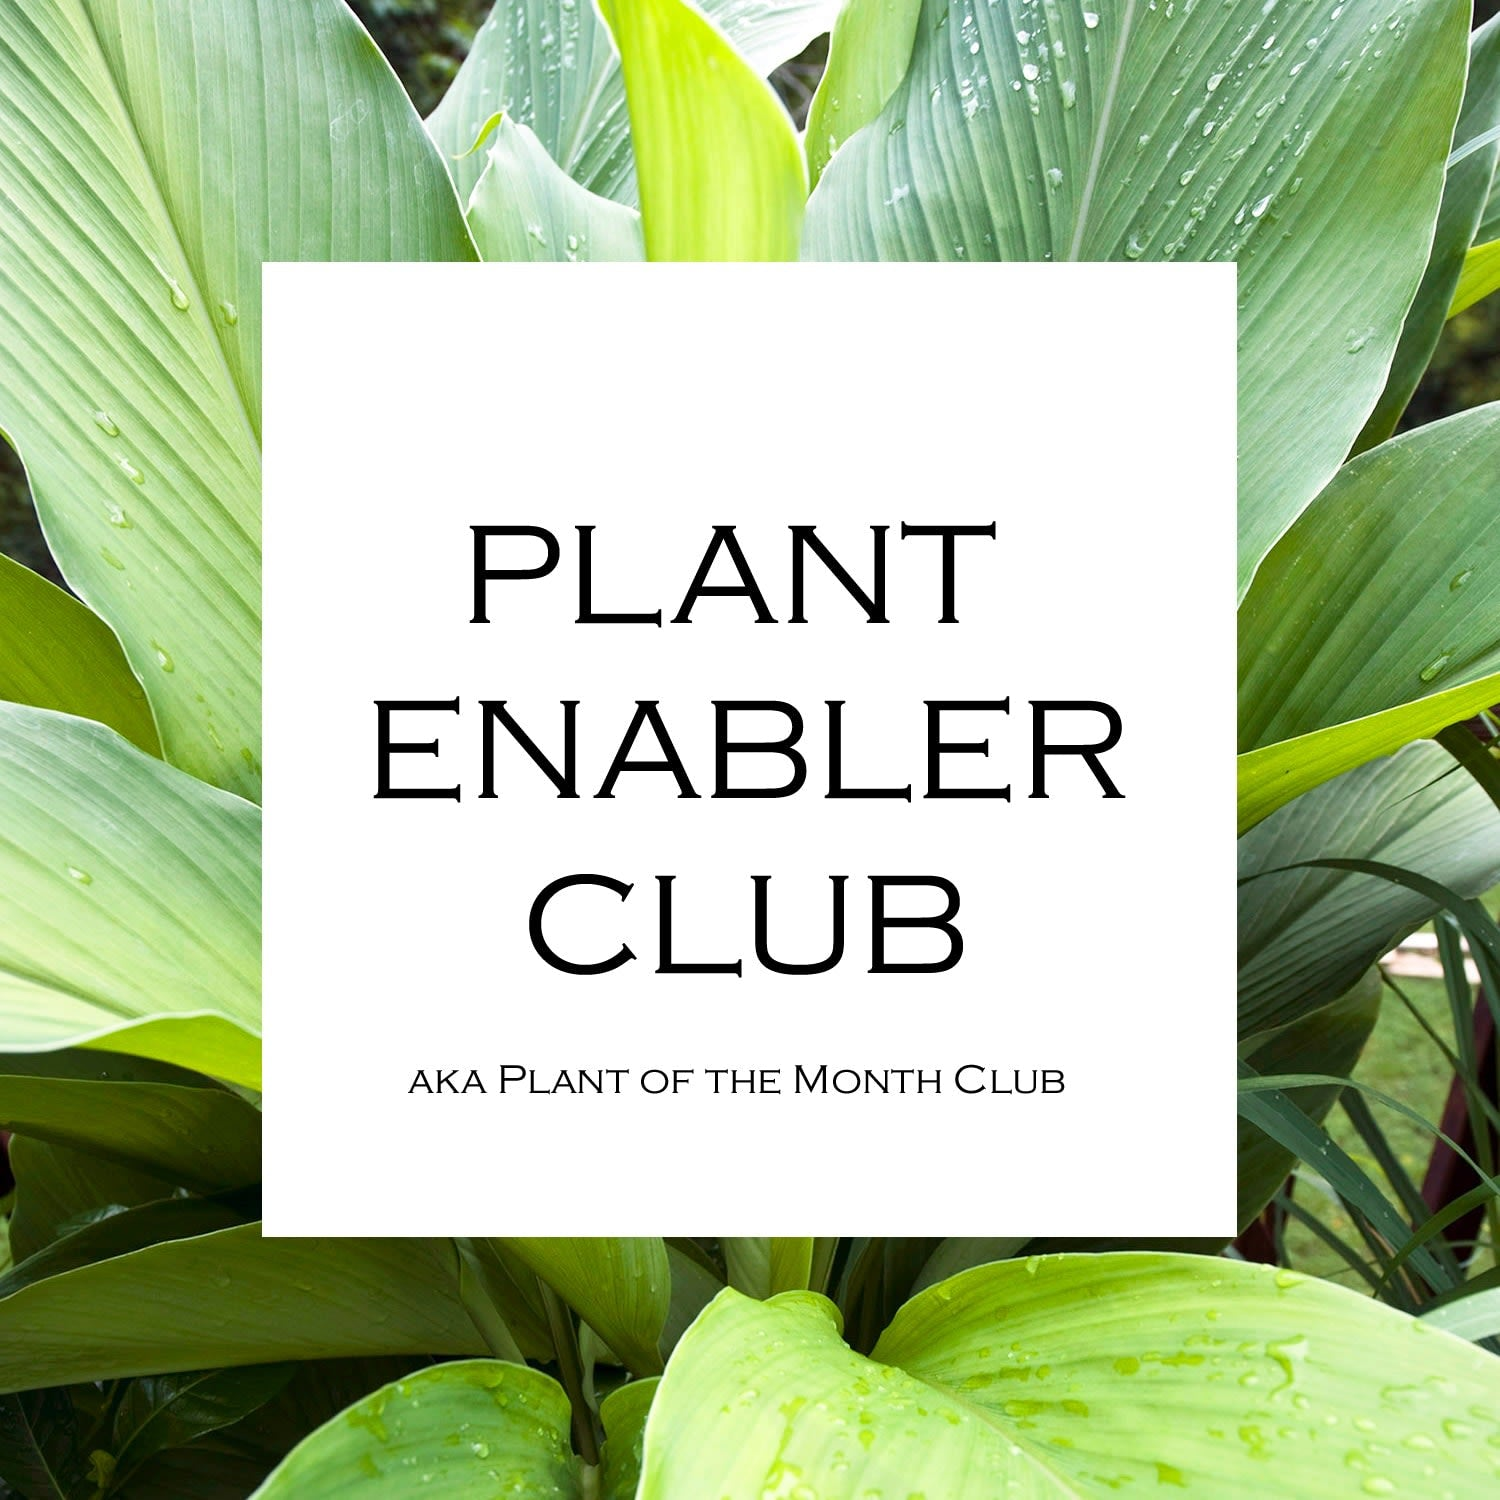 Plant Enabler Club - Daily floral delivery from Botanica Floral Design